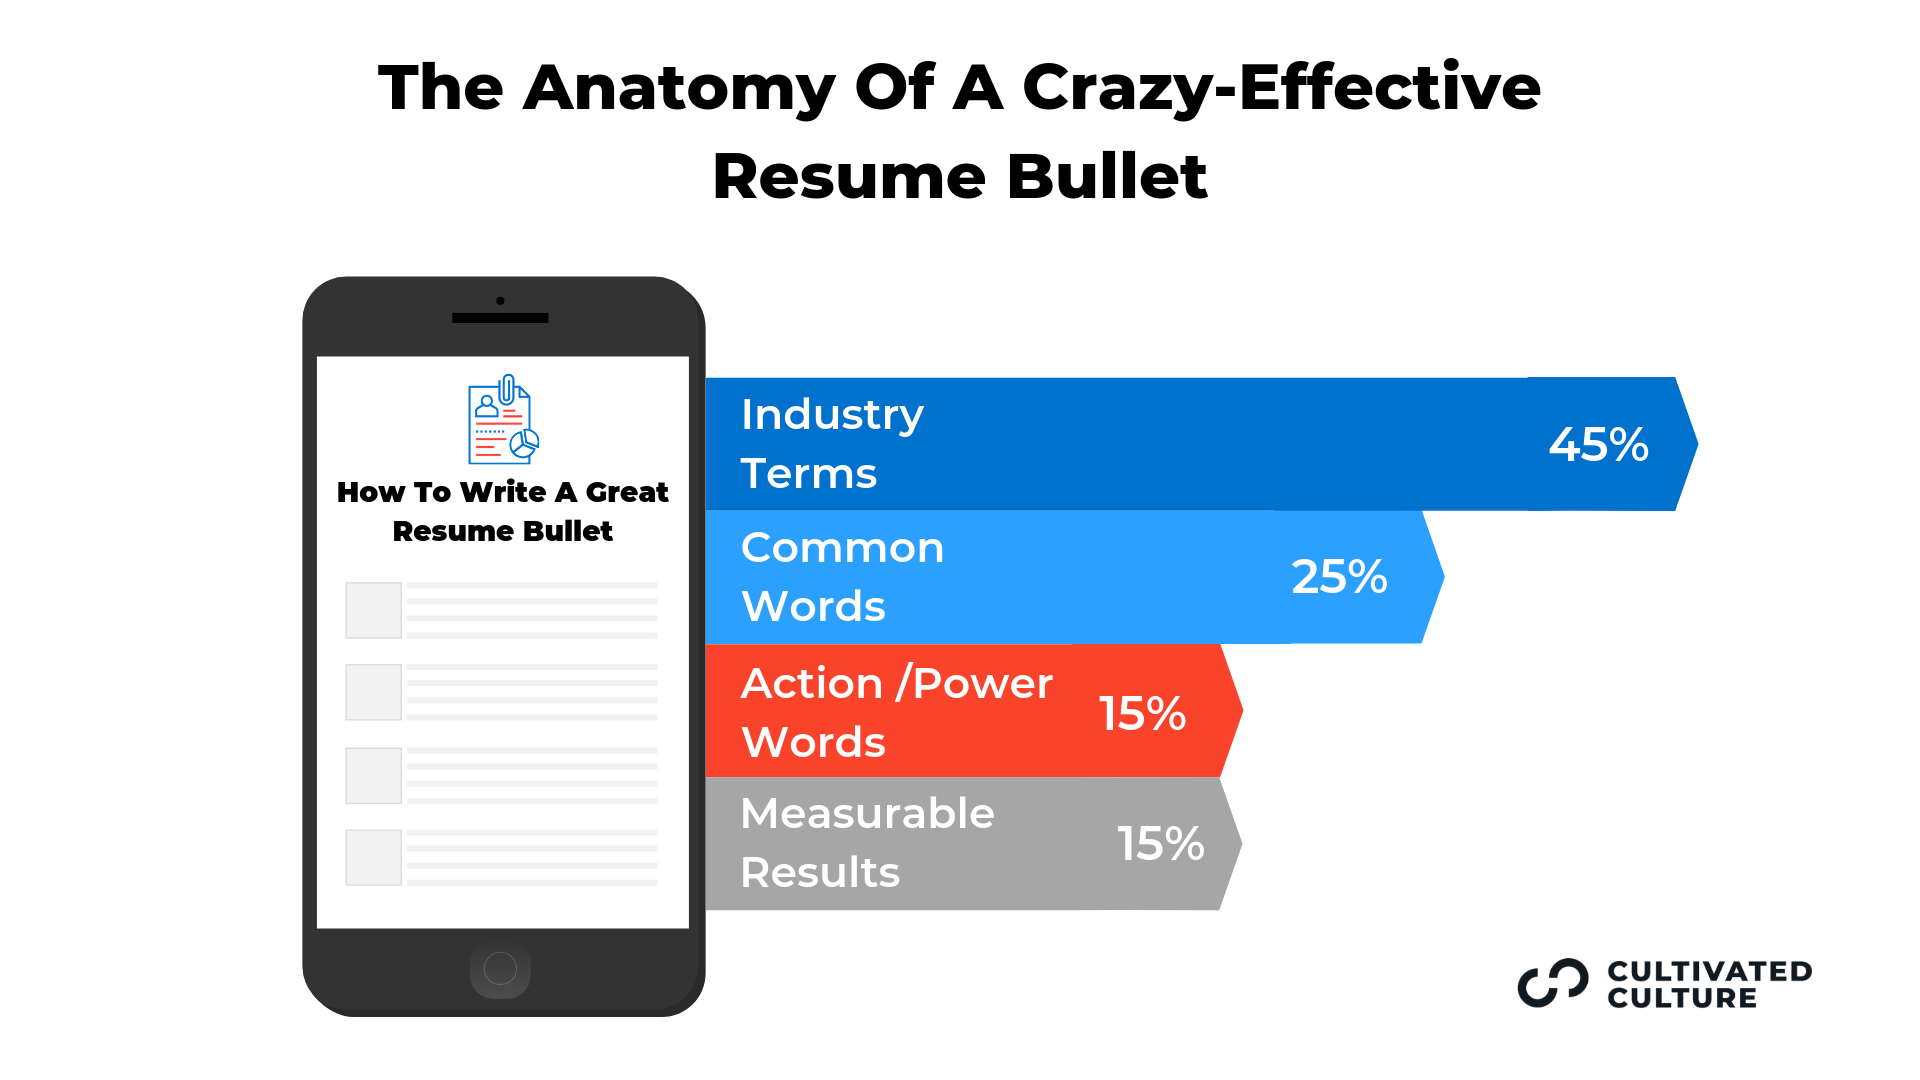 Anatomy of a Resume Bullet Graphic: Industry Terms 45%, Common Words 25%, Action/Power Words 15%, Measurable Results 15%